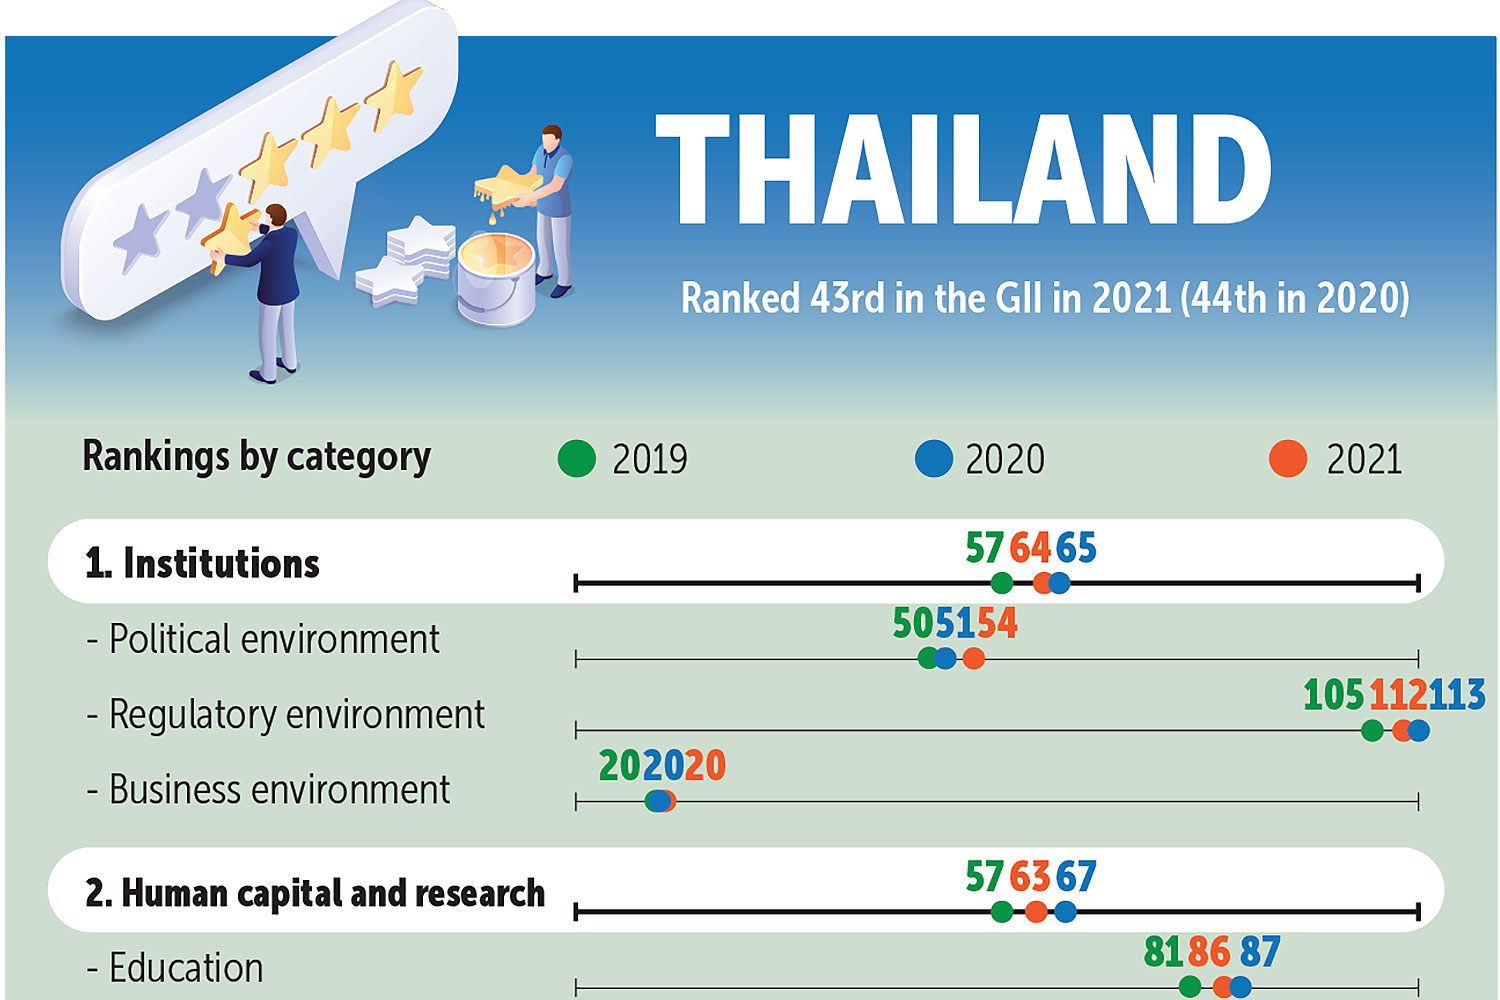 Thailand seeks top 30 place in GII by 2030